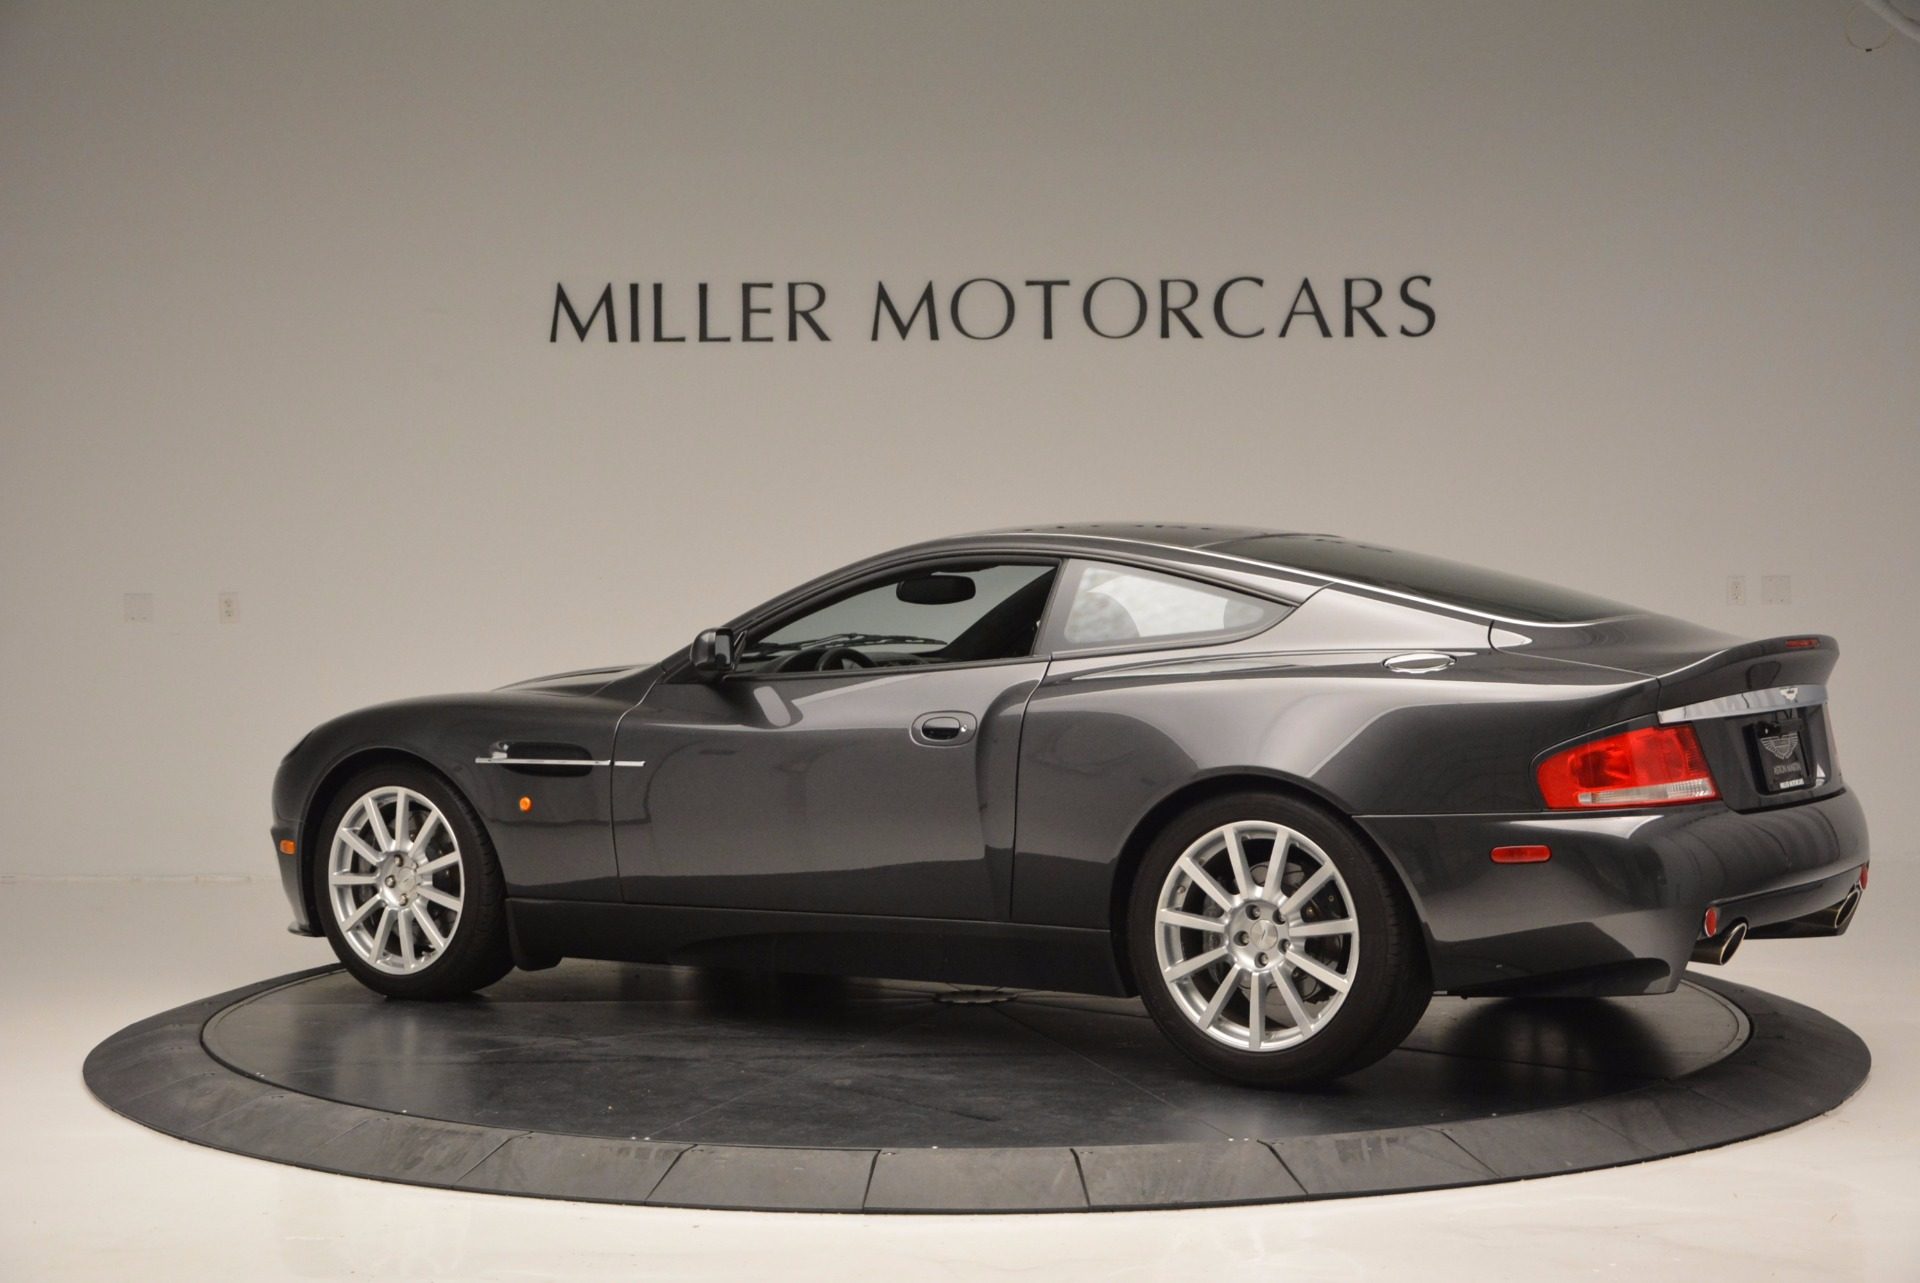 Used 2005 Aston Martin V12 Vanquish S For Sale In Westport, CT 645_p4